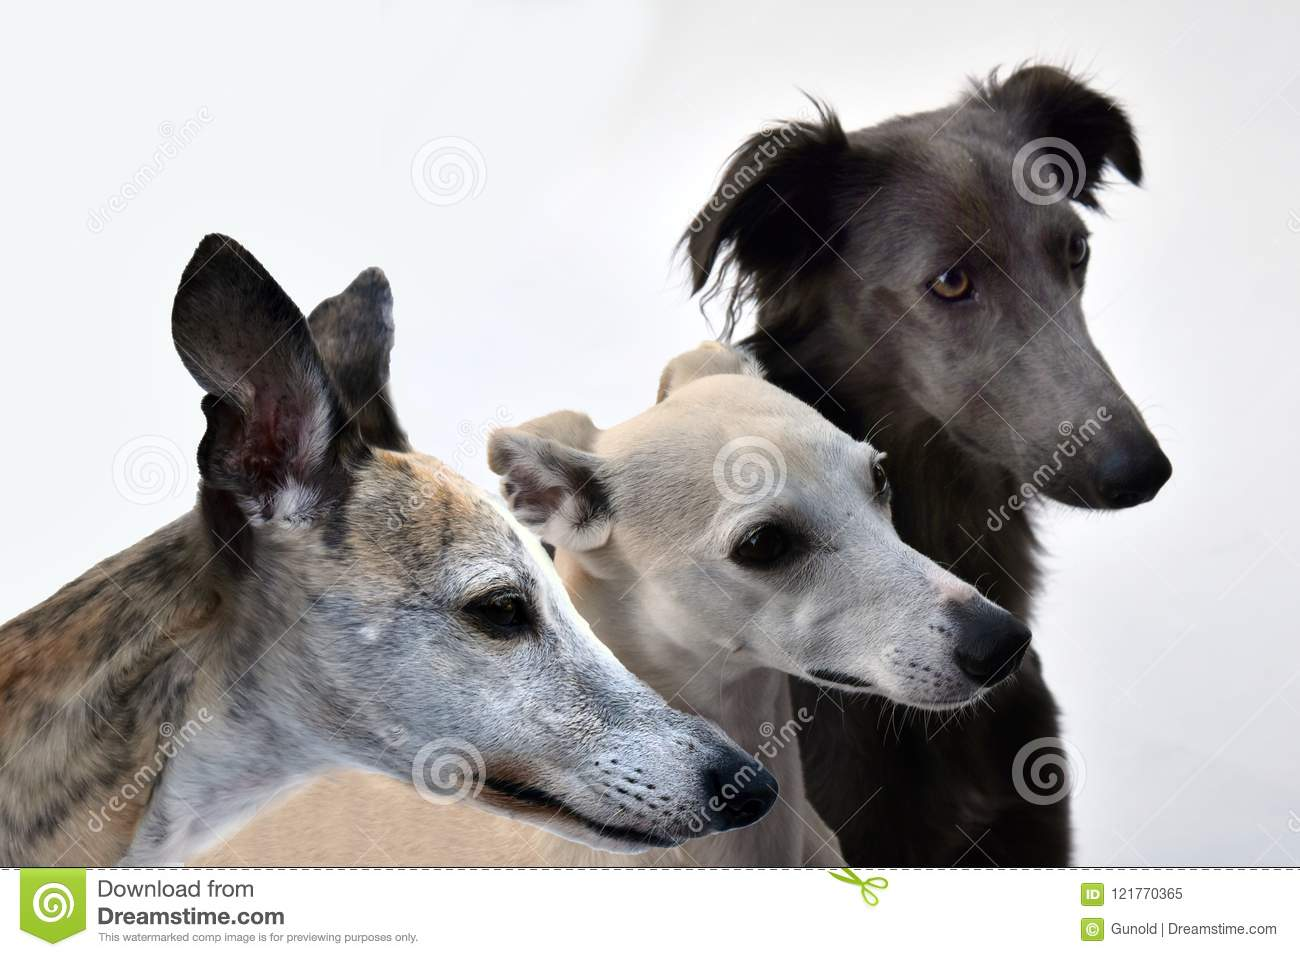 Three whippets side by side, portraits